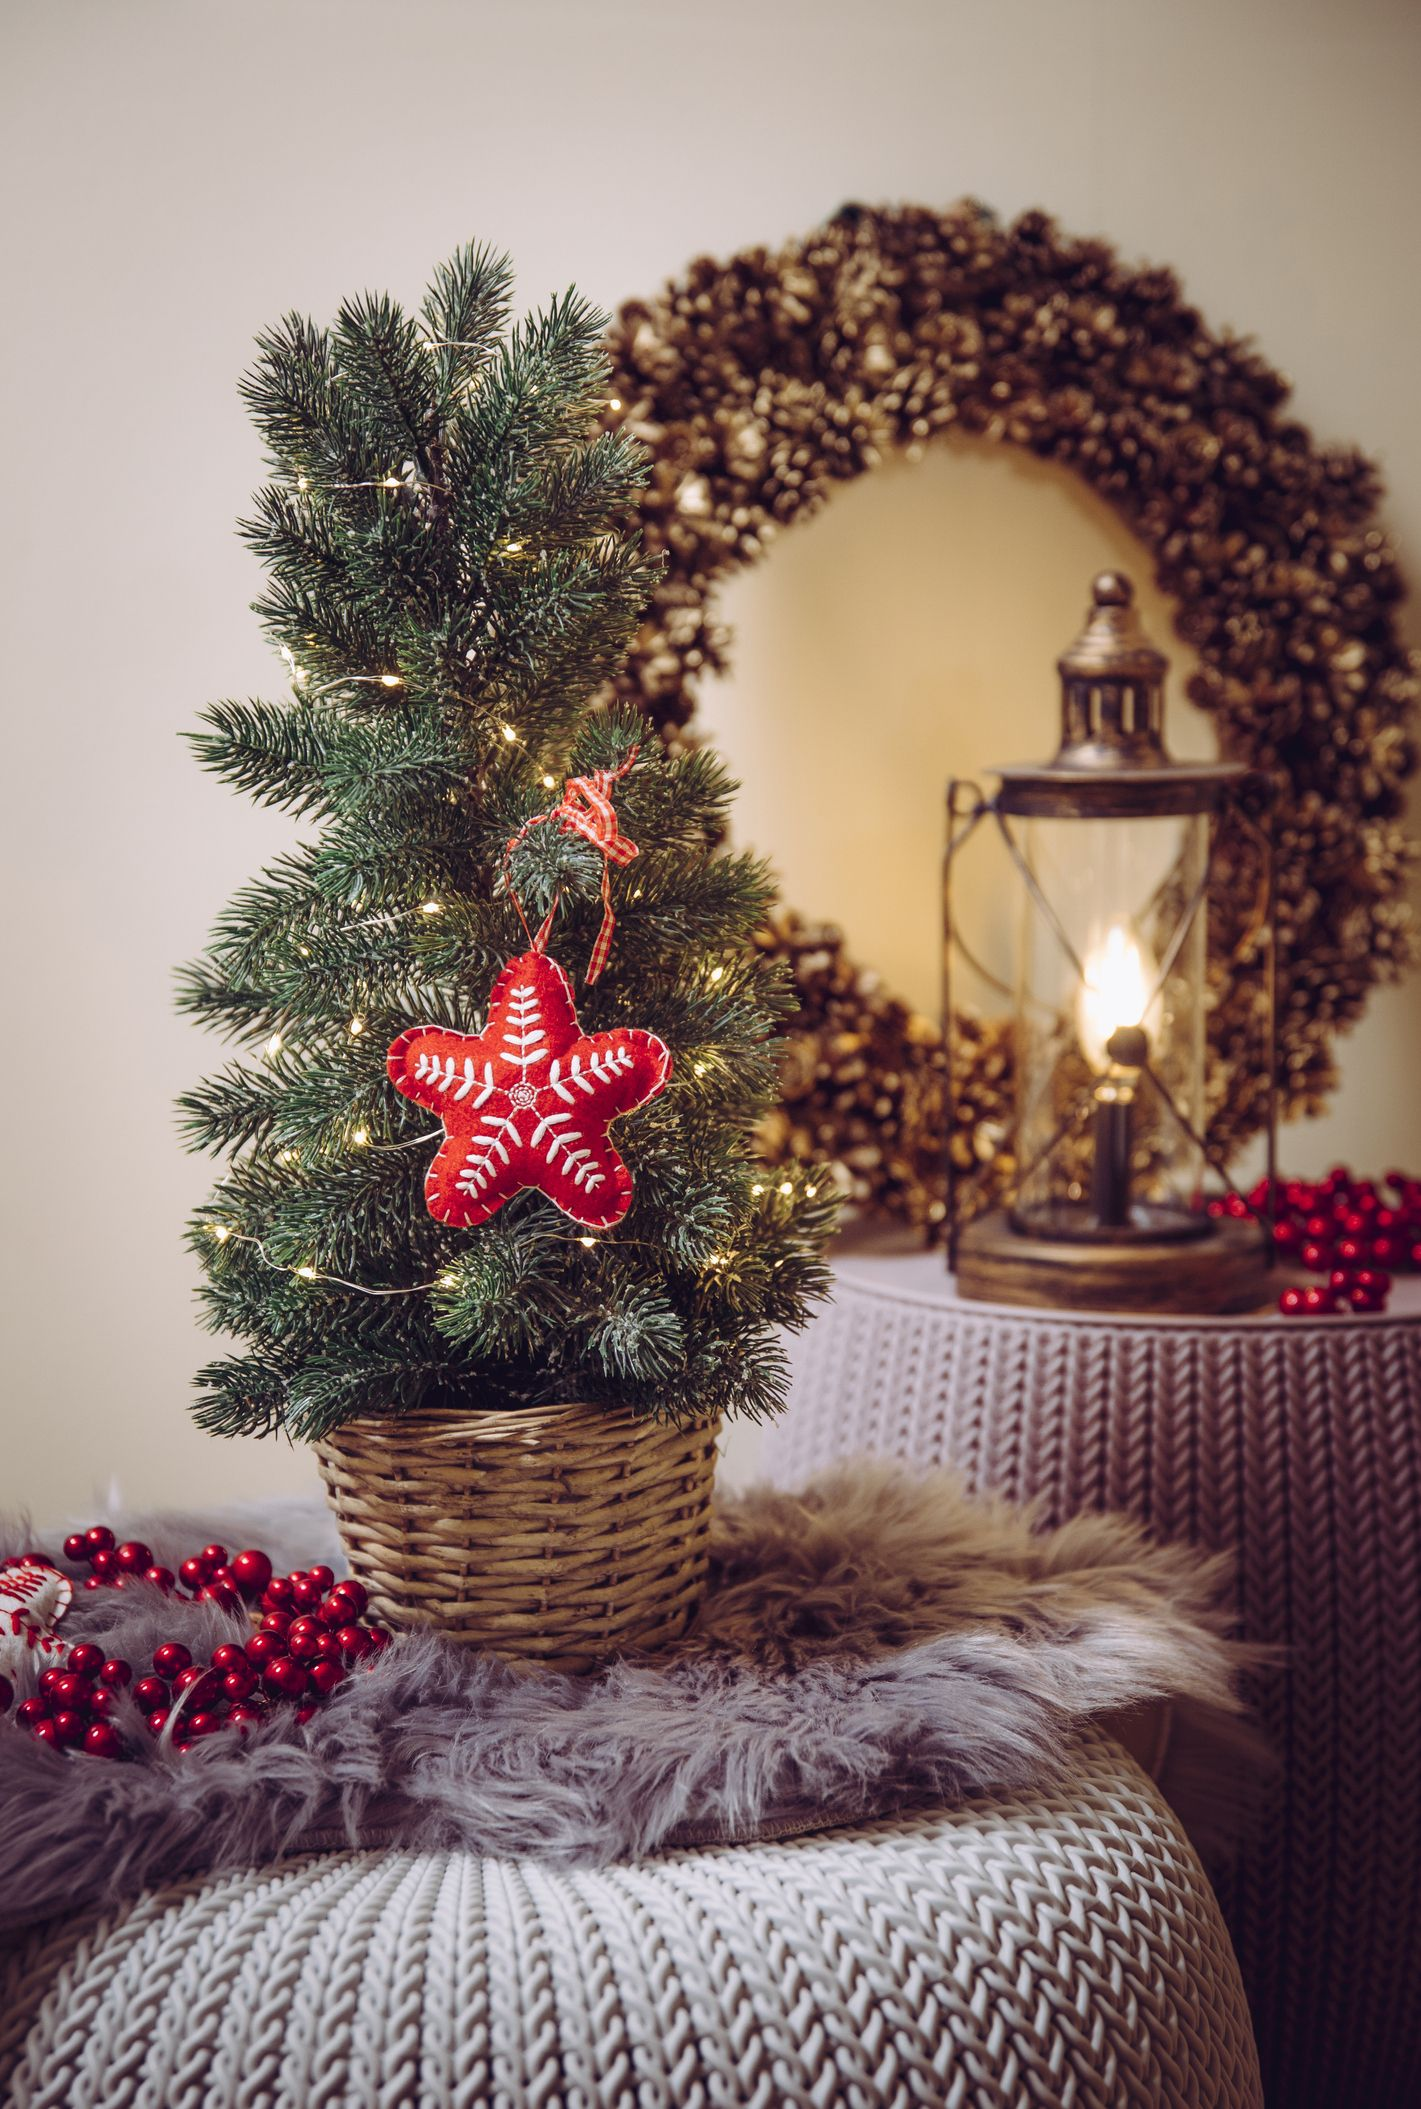 Sunflower Christmas Trees Is a Top Pinterest Christmas 2019